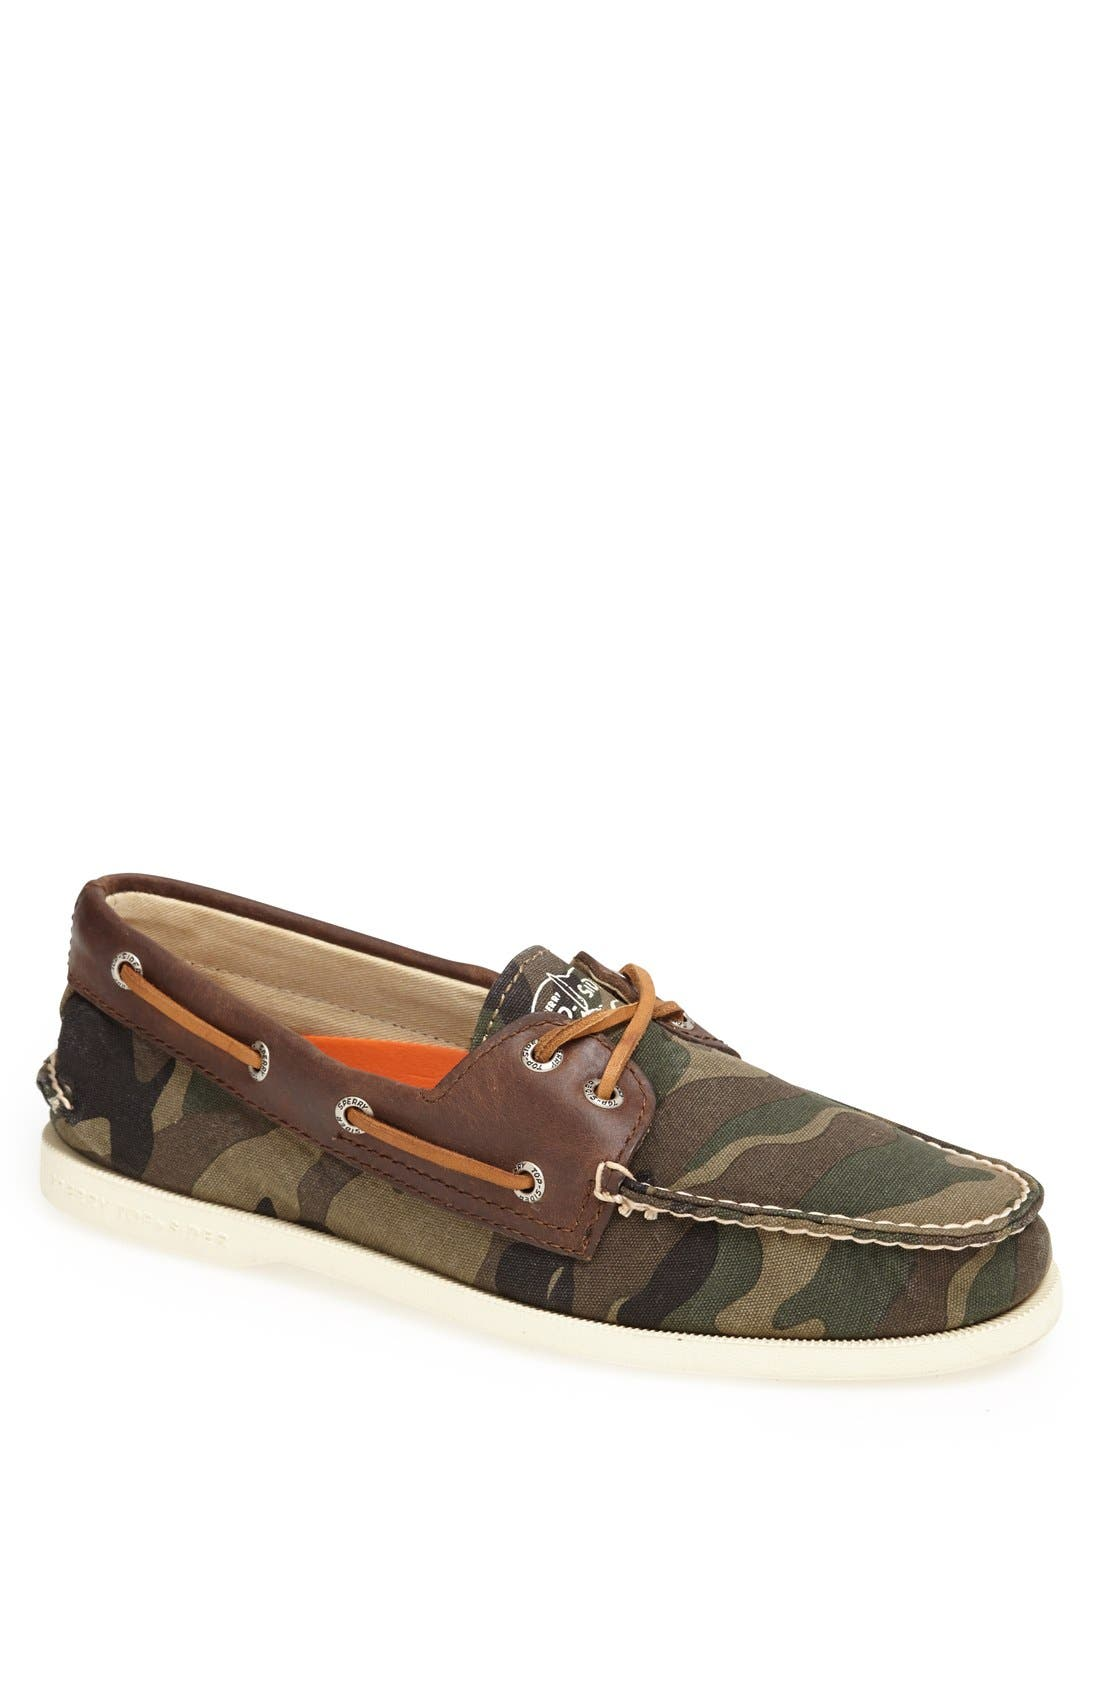 Top-Sider<sup>®</sup> 'Authentic Original Camo' Canvas Boat Shoe, Main, color, 300